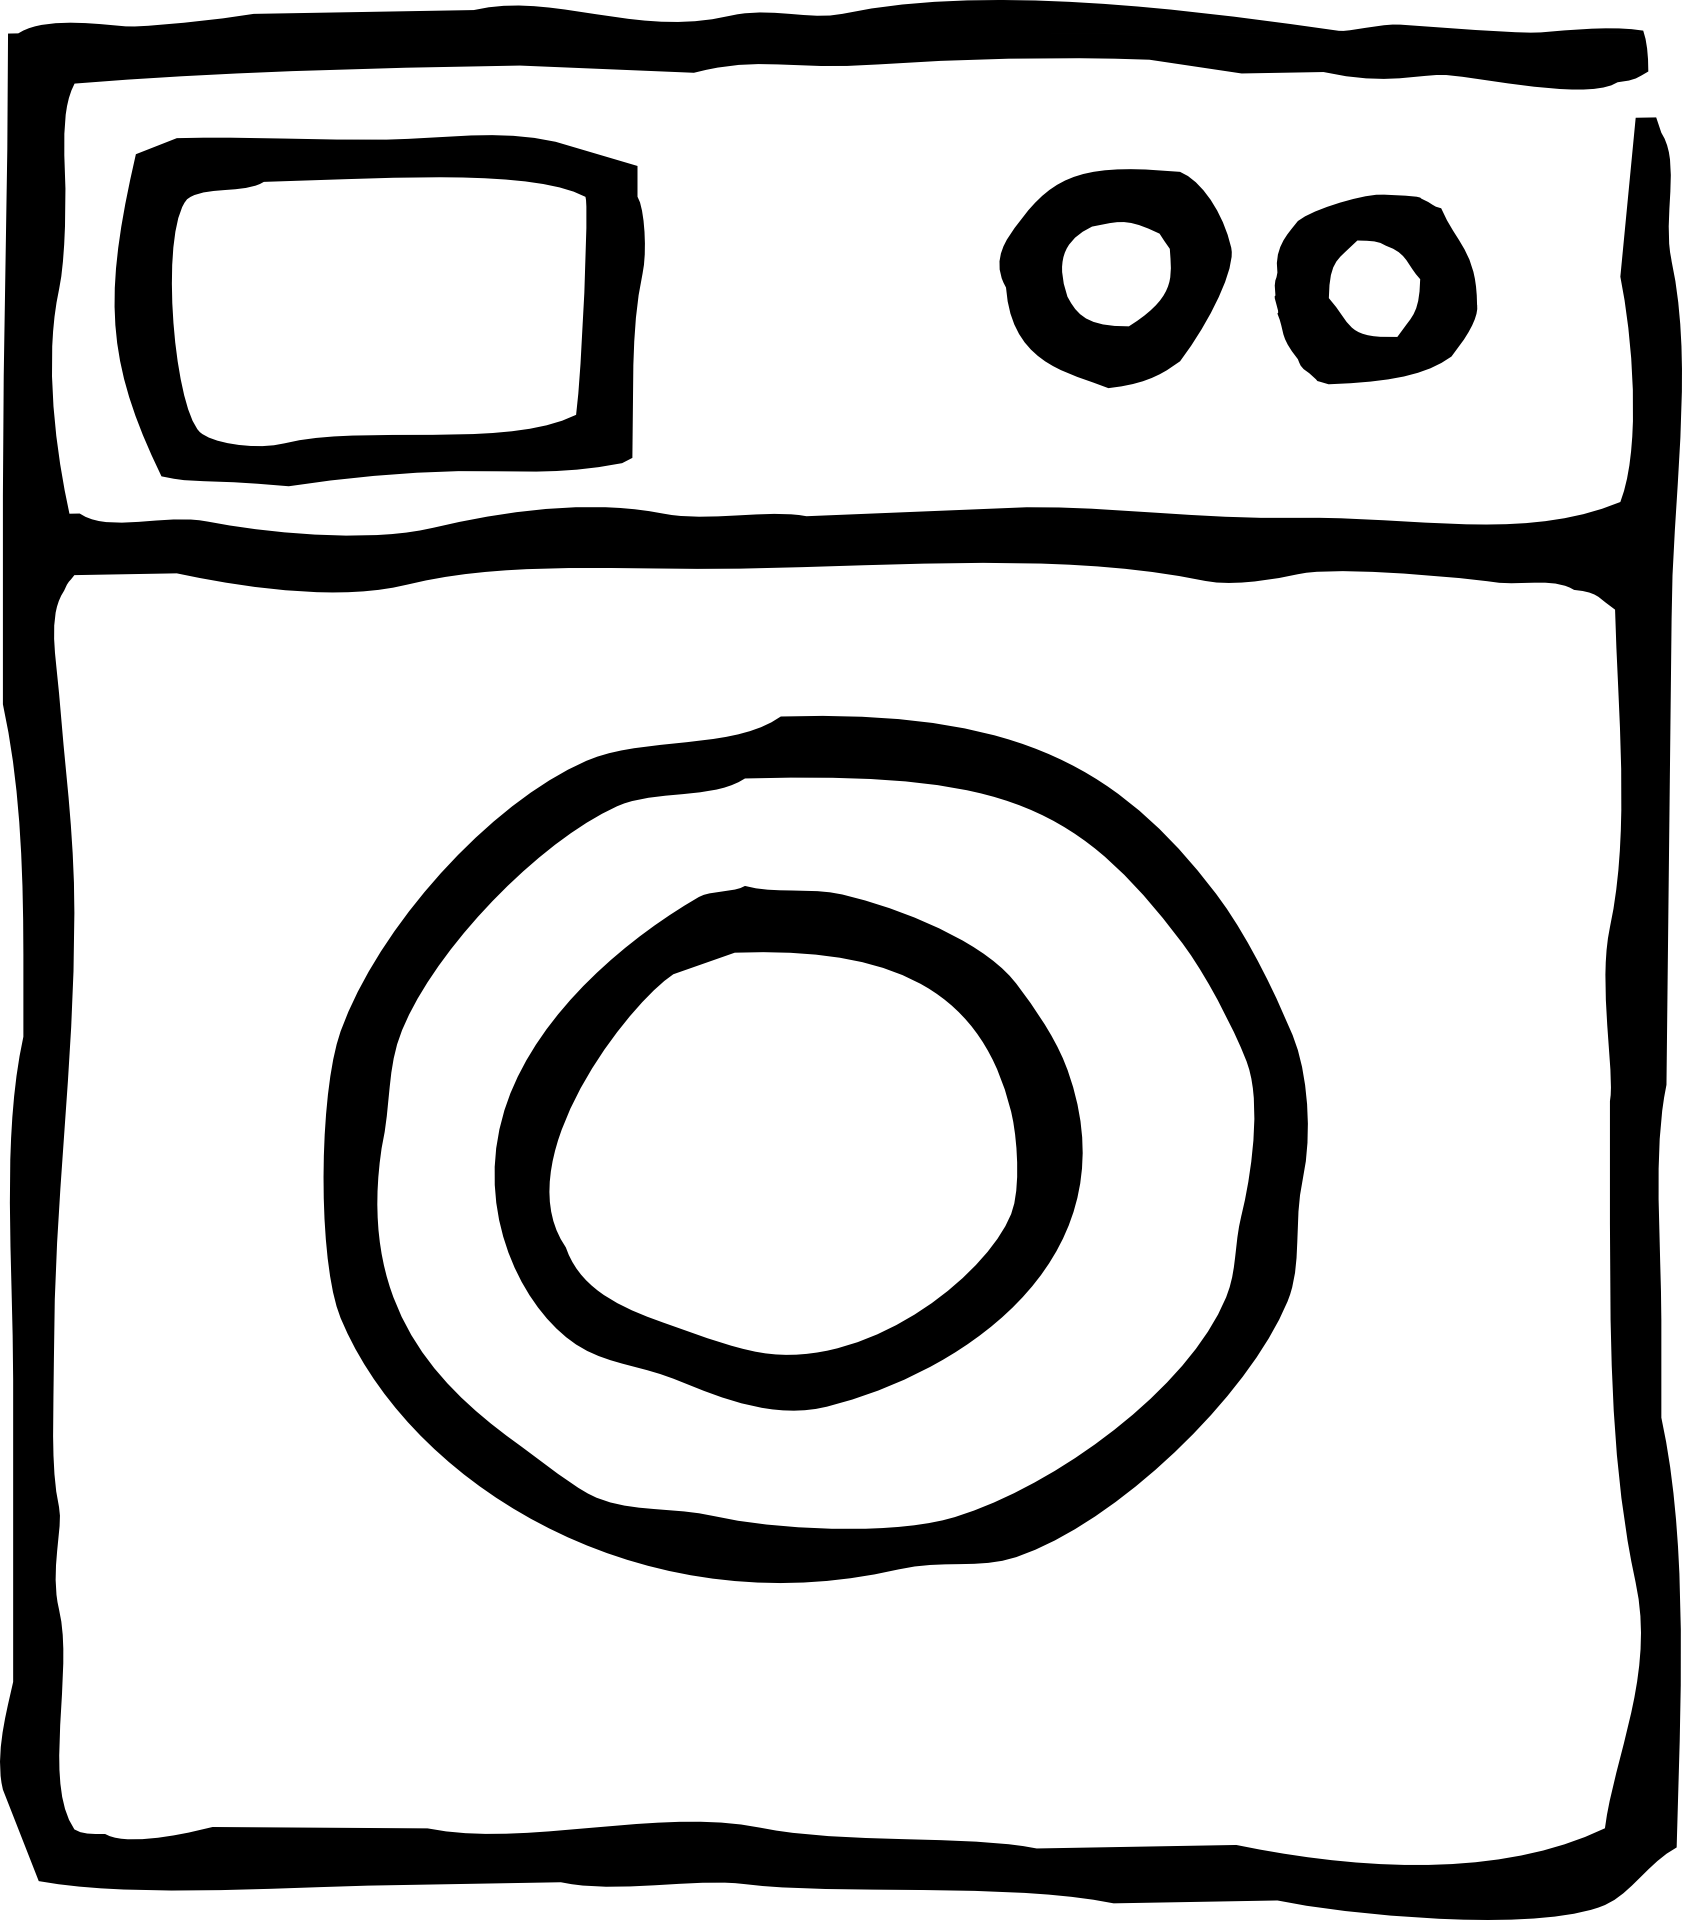 Washing machine 534746